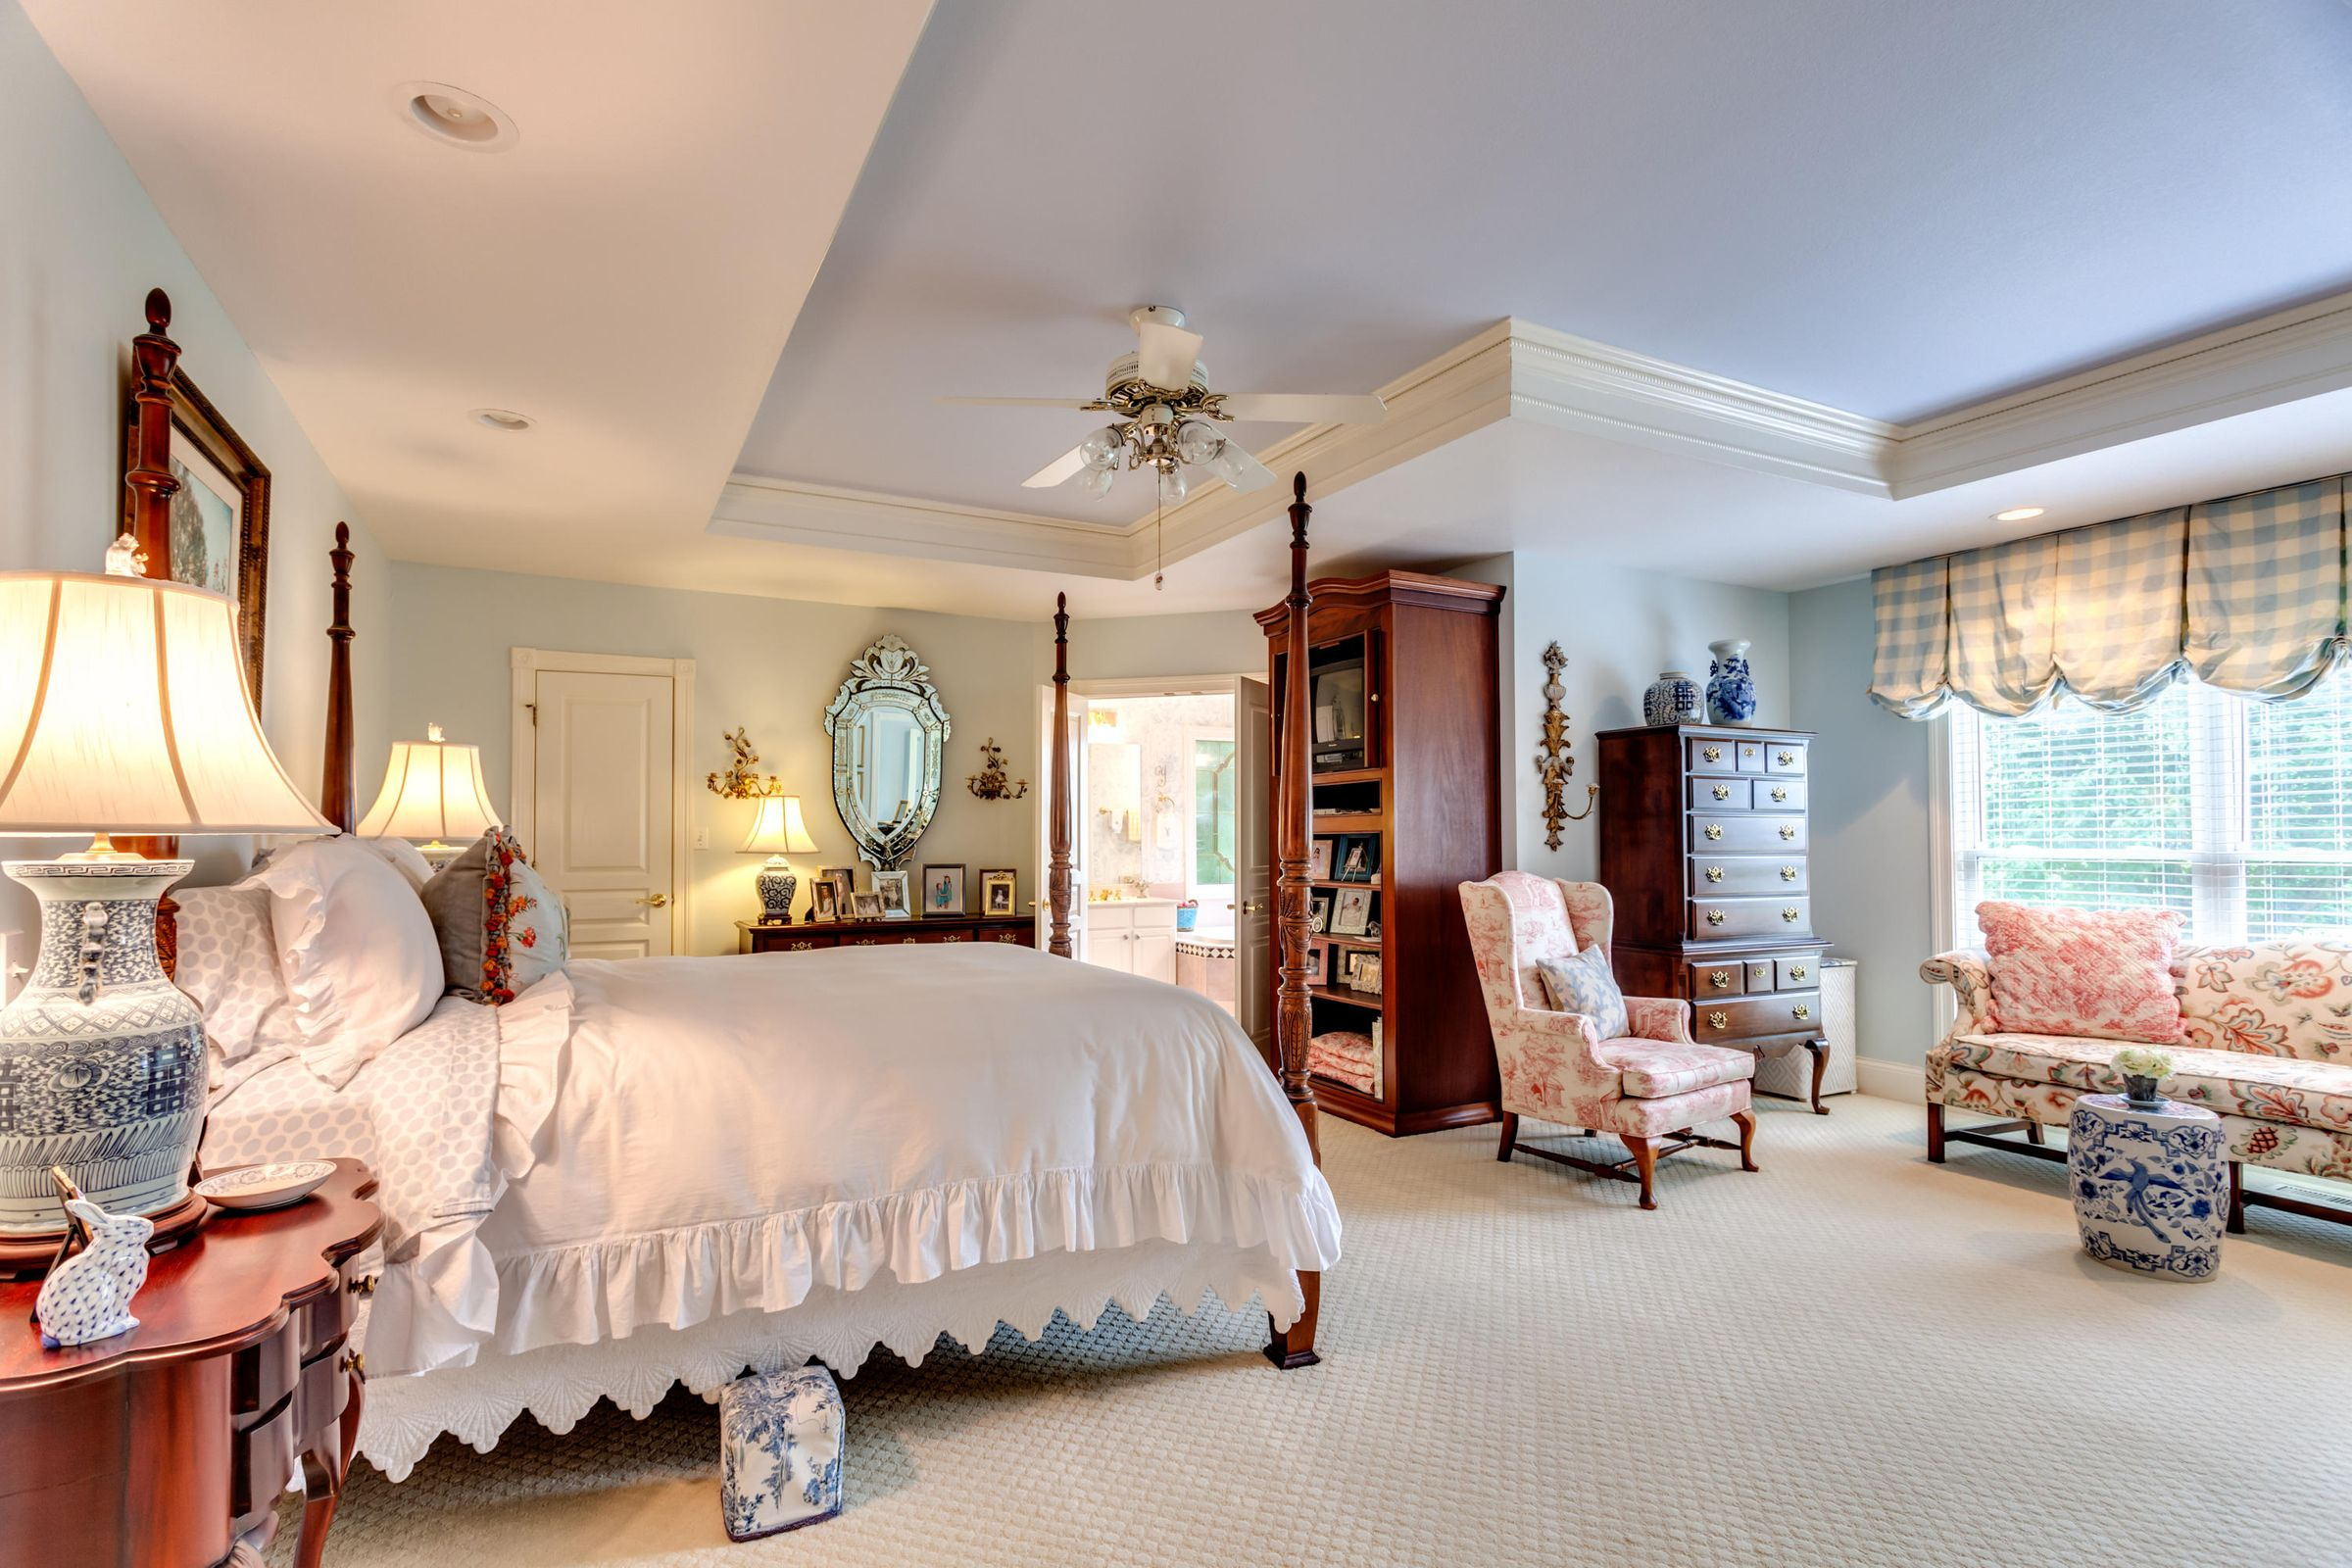 Welcome to the Master Suite!